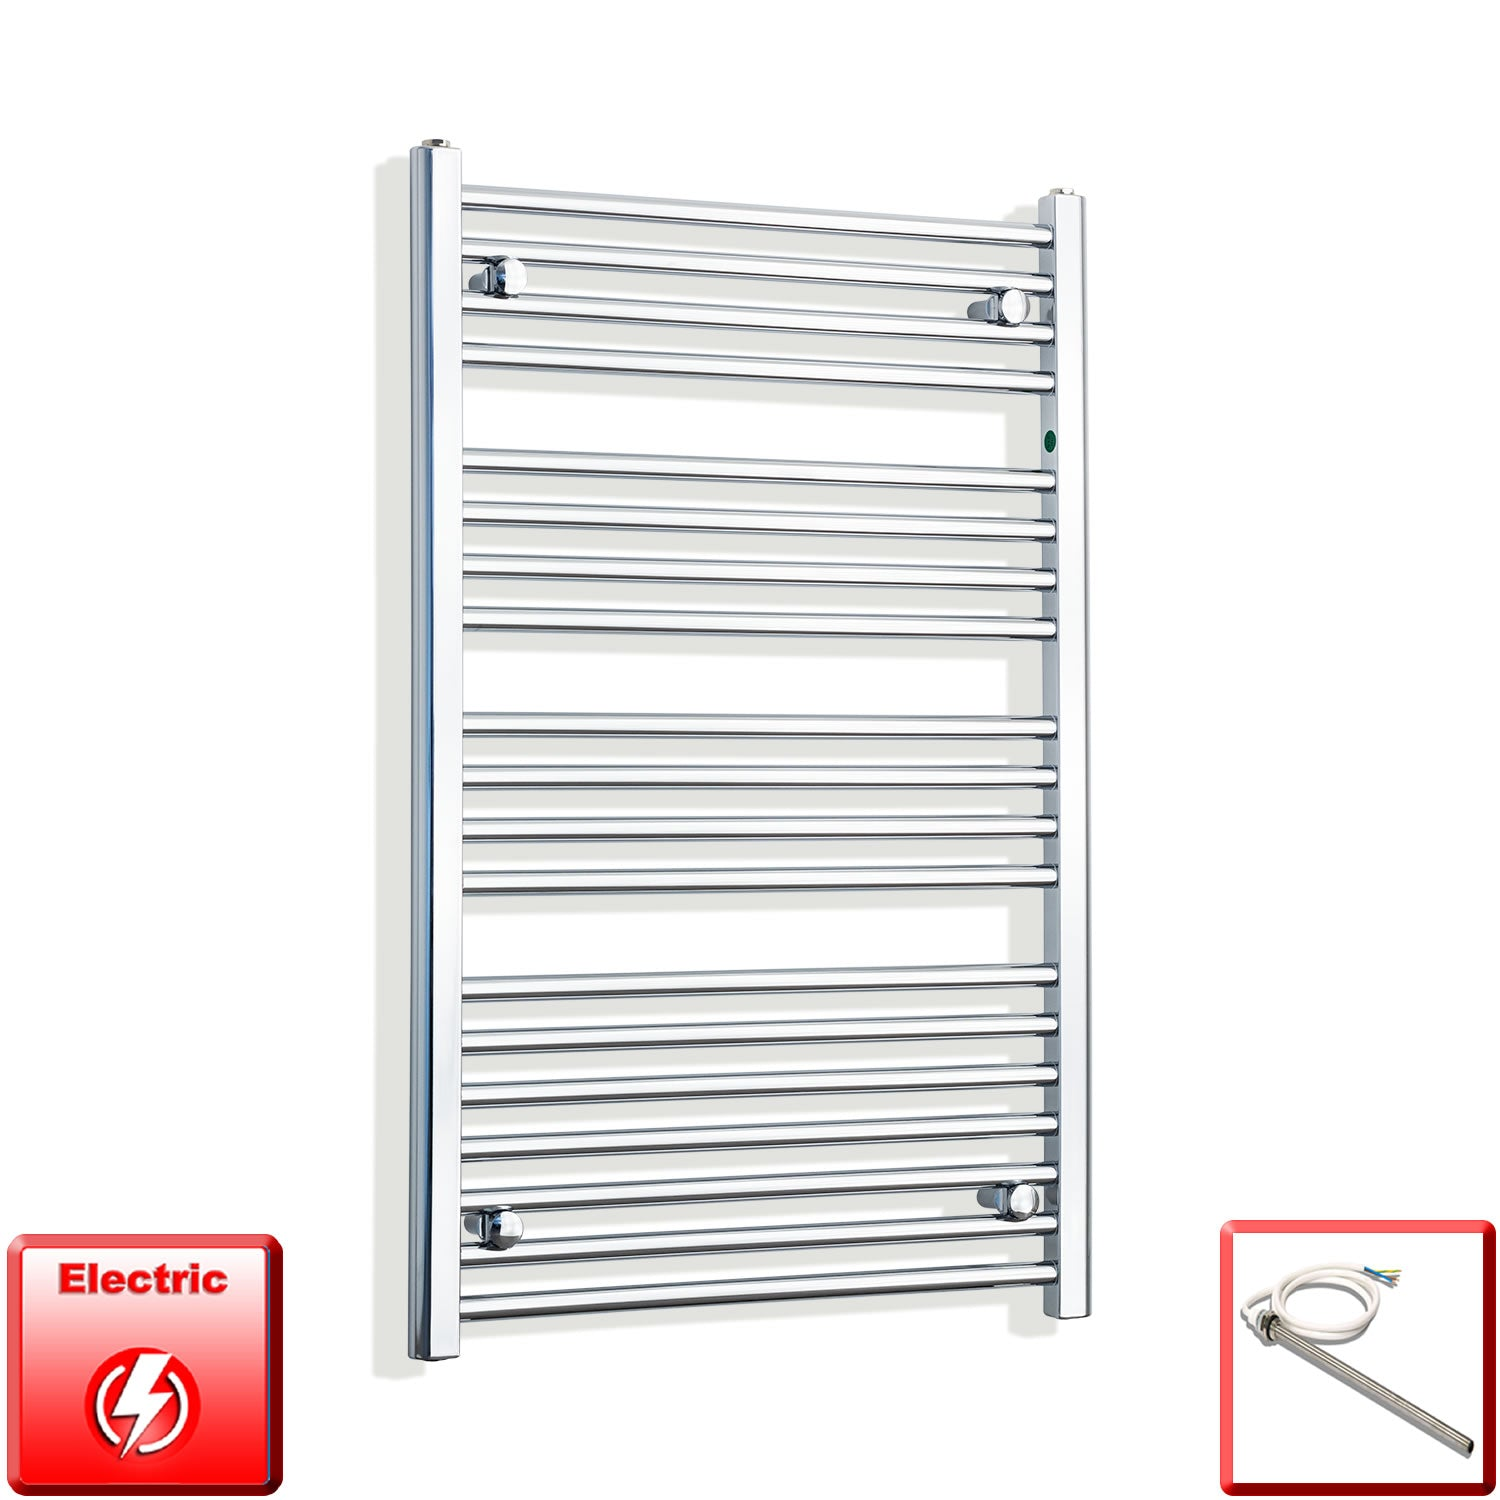 700mm Wide 1000mm High Flat Or Curved Chrome Pre-Filled Electric Heated Towel Rail Radiator HTR,Single Heat Element / Straight